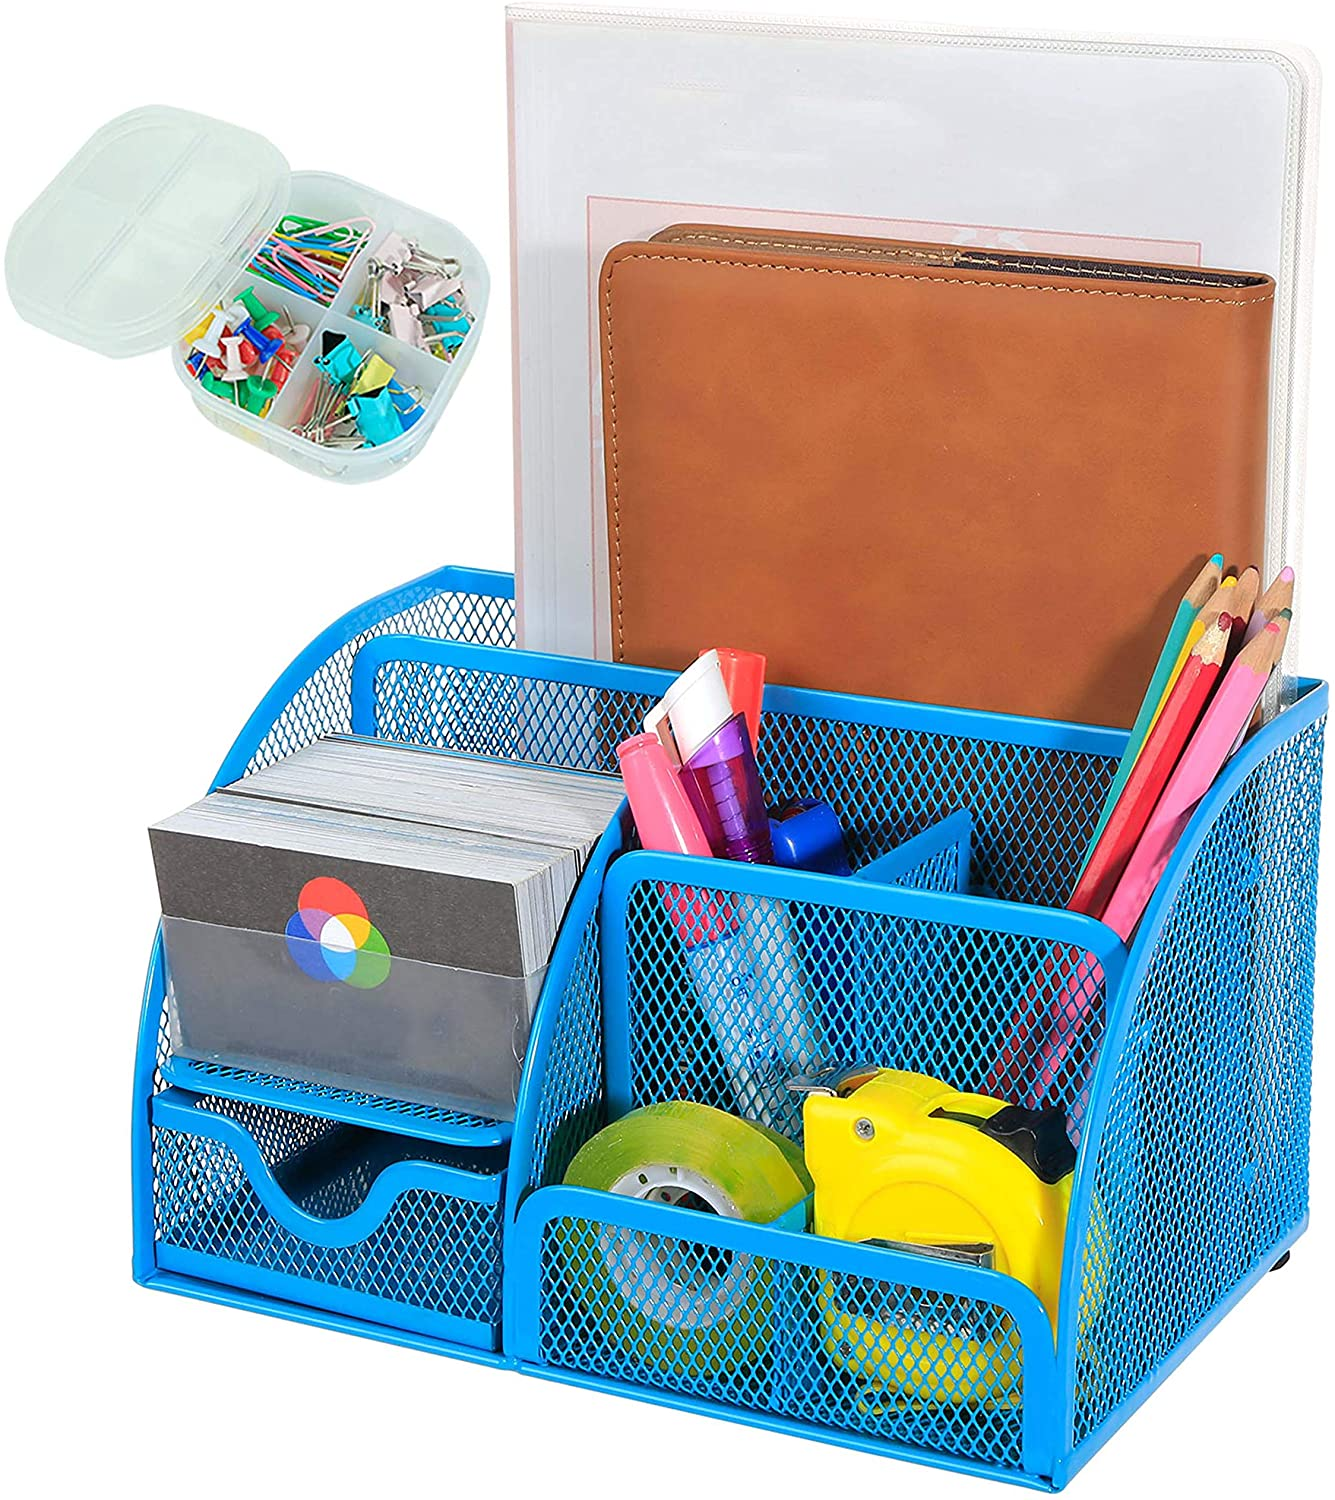 XYTLAX Desk Organizer Mesh Desktop Office Supplies Multi-Functional Caddy Pen Pencil Holder Stationery with 6 Compartments and 1 Drawer for Office, Home, School, Classroom (Blue)